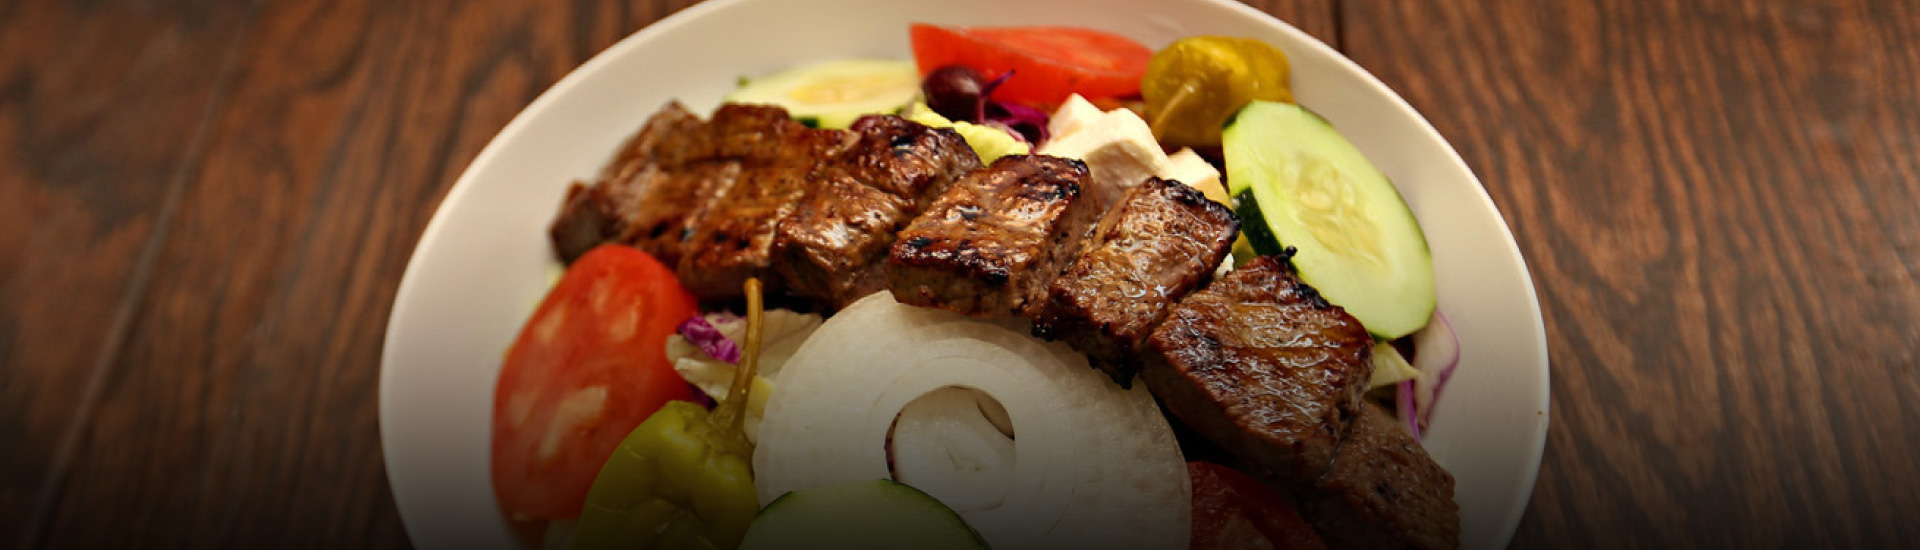 Fresh and delicious grilled kabob salad from Moby Dick